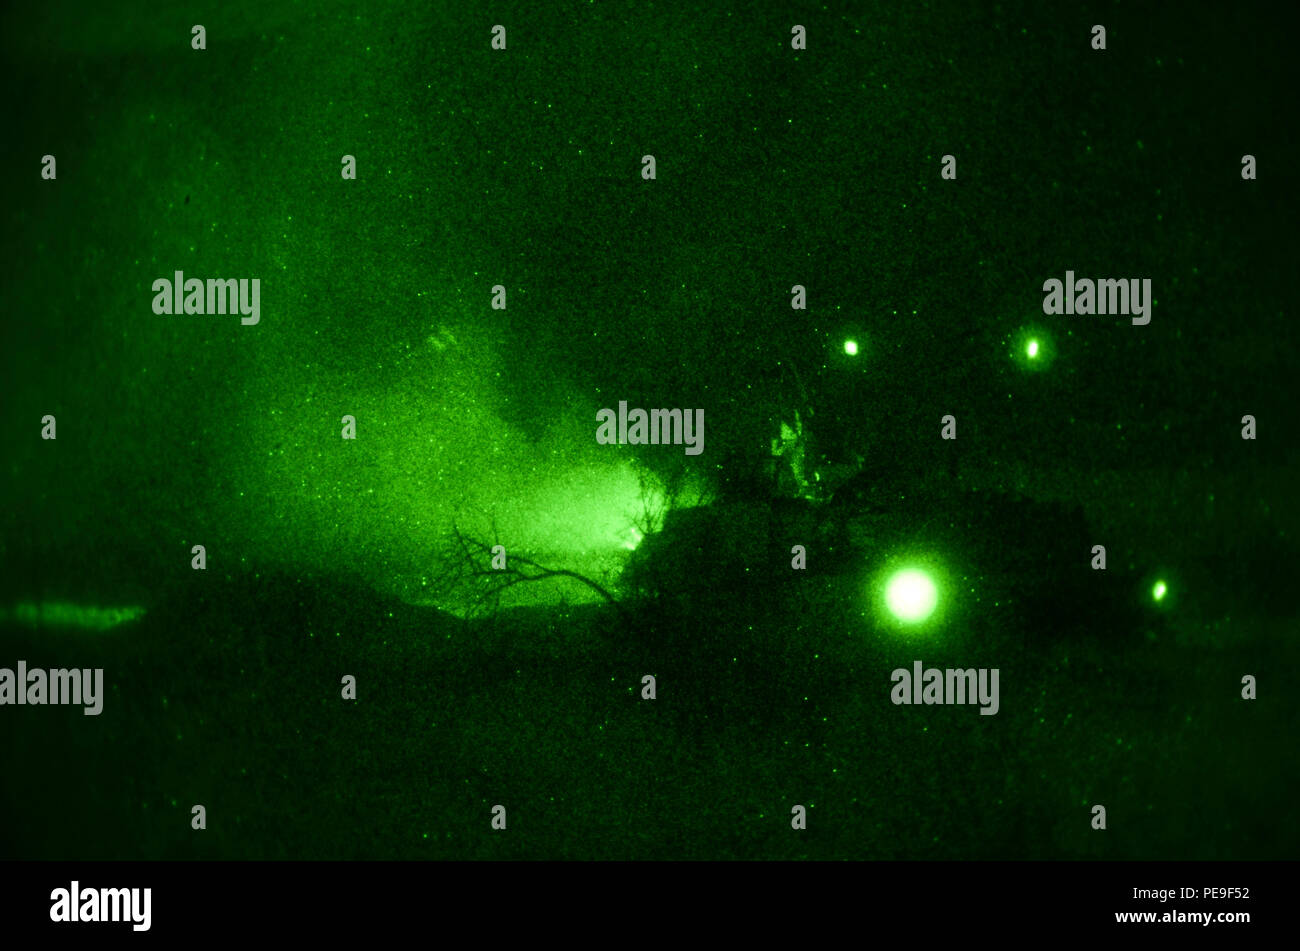 Soldiers of 1st Armored Brigade Combat Team, attached to 5th Squadron, 7th Cavalry Regiment, 3rd Infantry Division, stationed at Fort Stewart, Ga., shoot the M240 Coaxial machine gun that is mounted to the M1A2 System Enhancement Package Version 2 Abram Tank at enemy targets during a night operations field training exercise in support of Operation Atlantic Resolve at Novo Selo Training Center, Bulgaria, Nov. 17, 2015. (U.S. Army photo by Staff Sgt. Steven M. Colvin/Released) - Stock Image